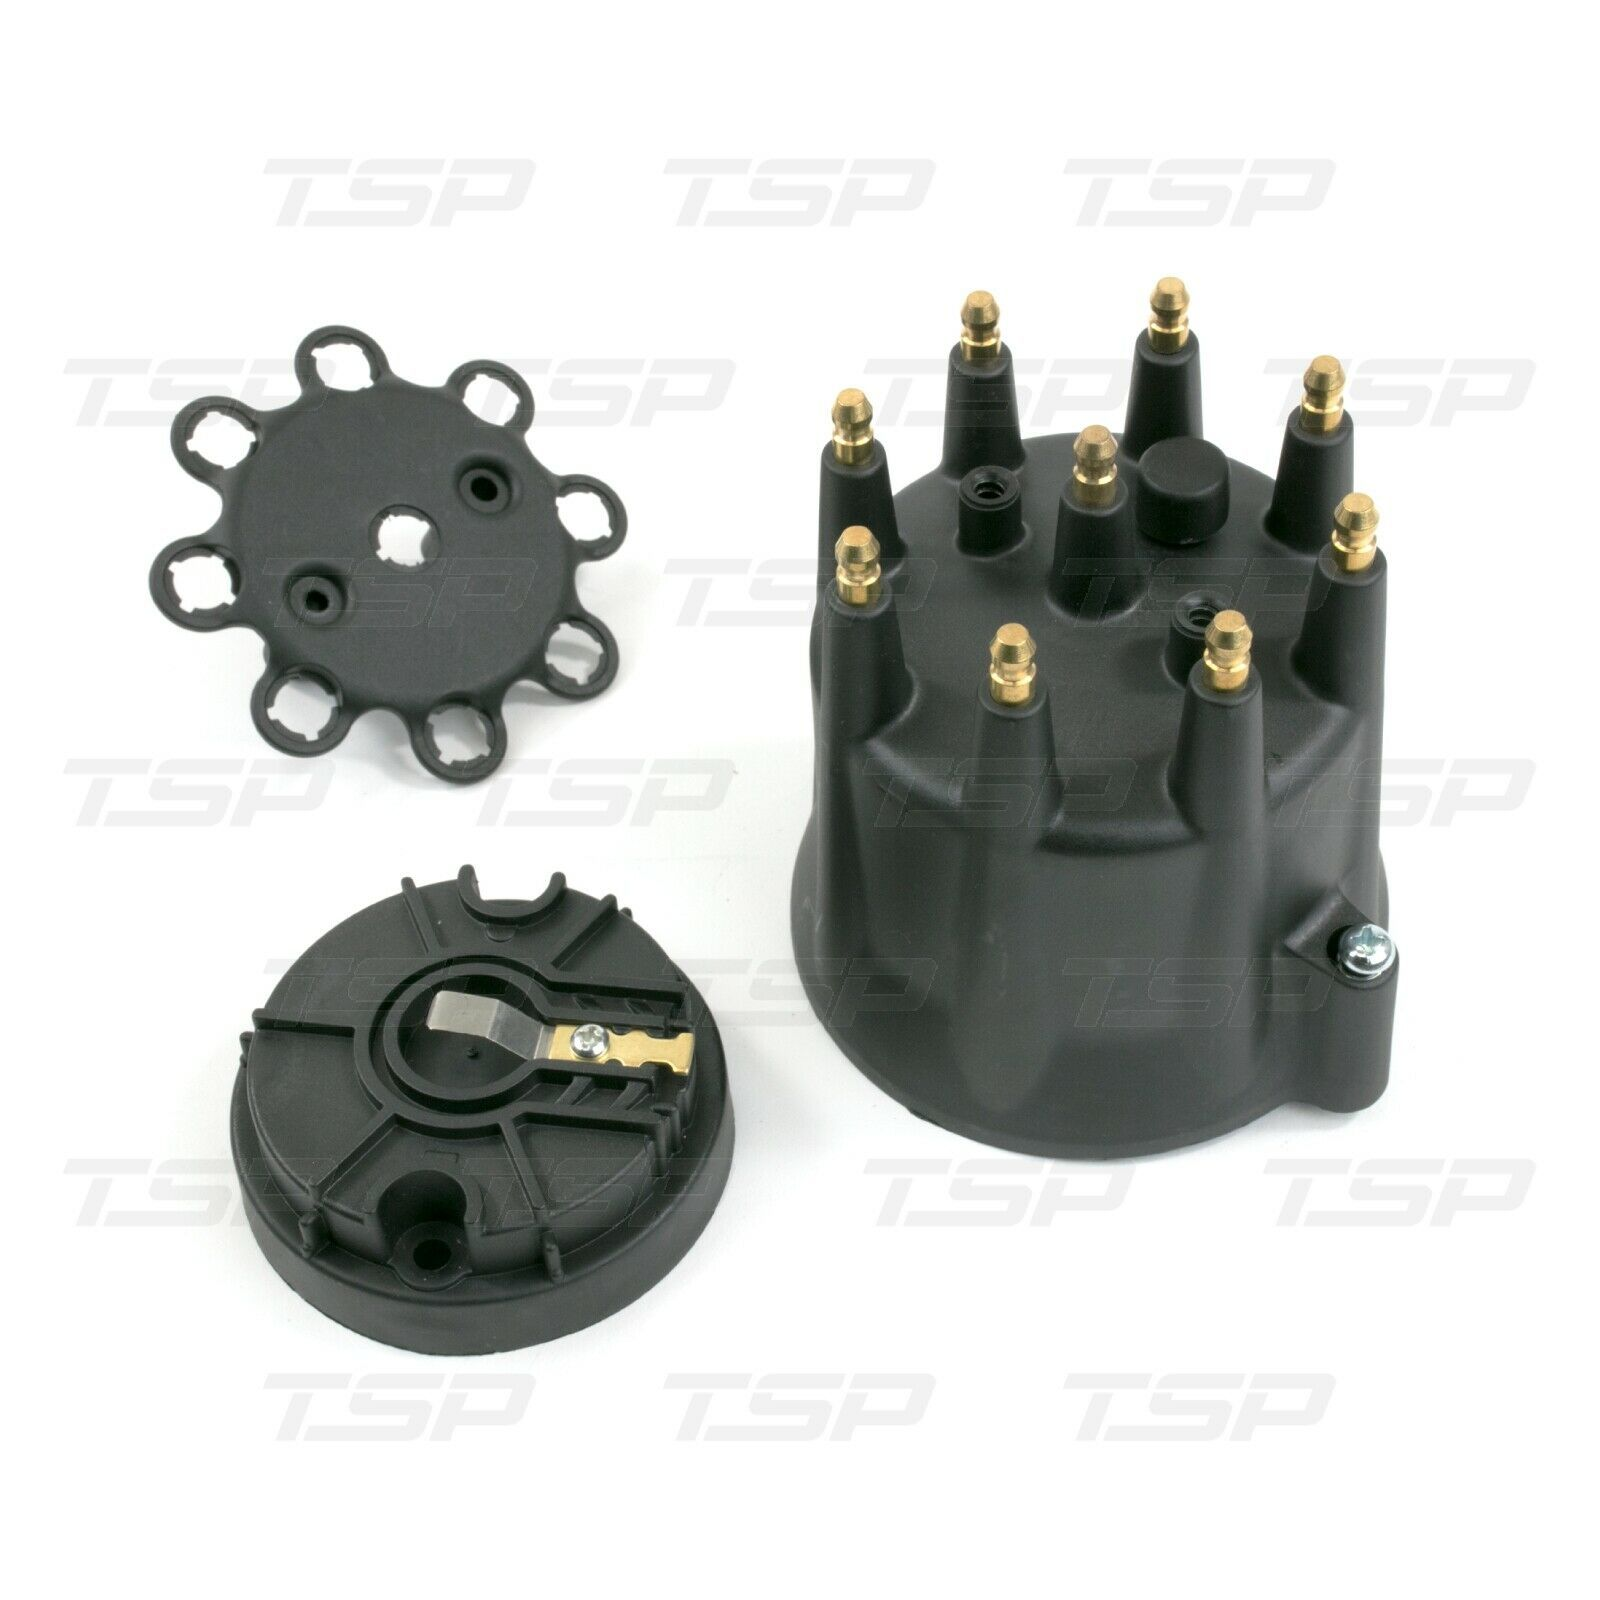 A-Team Performance 8-Cylinder Male Pro Series Distributor Cap & Rotor Kit Black